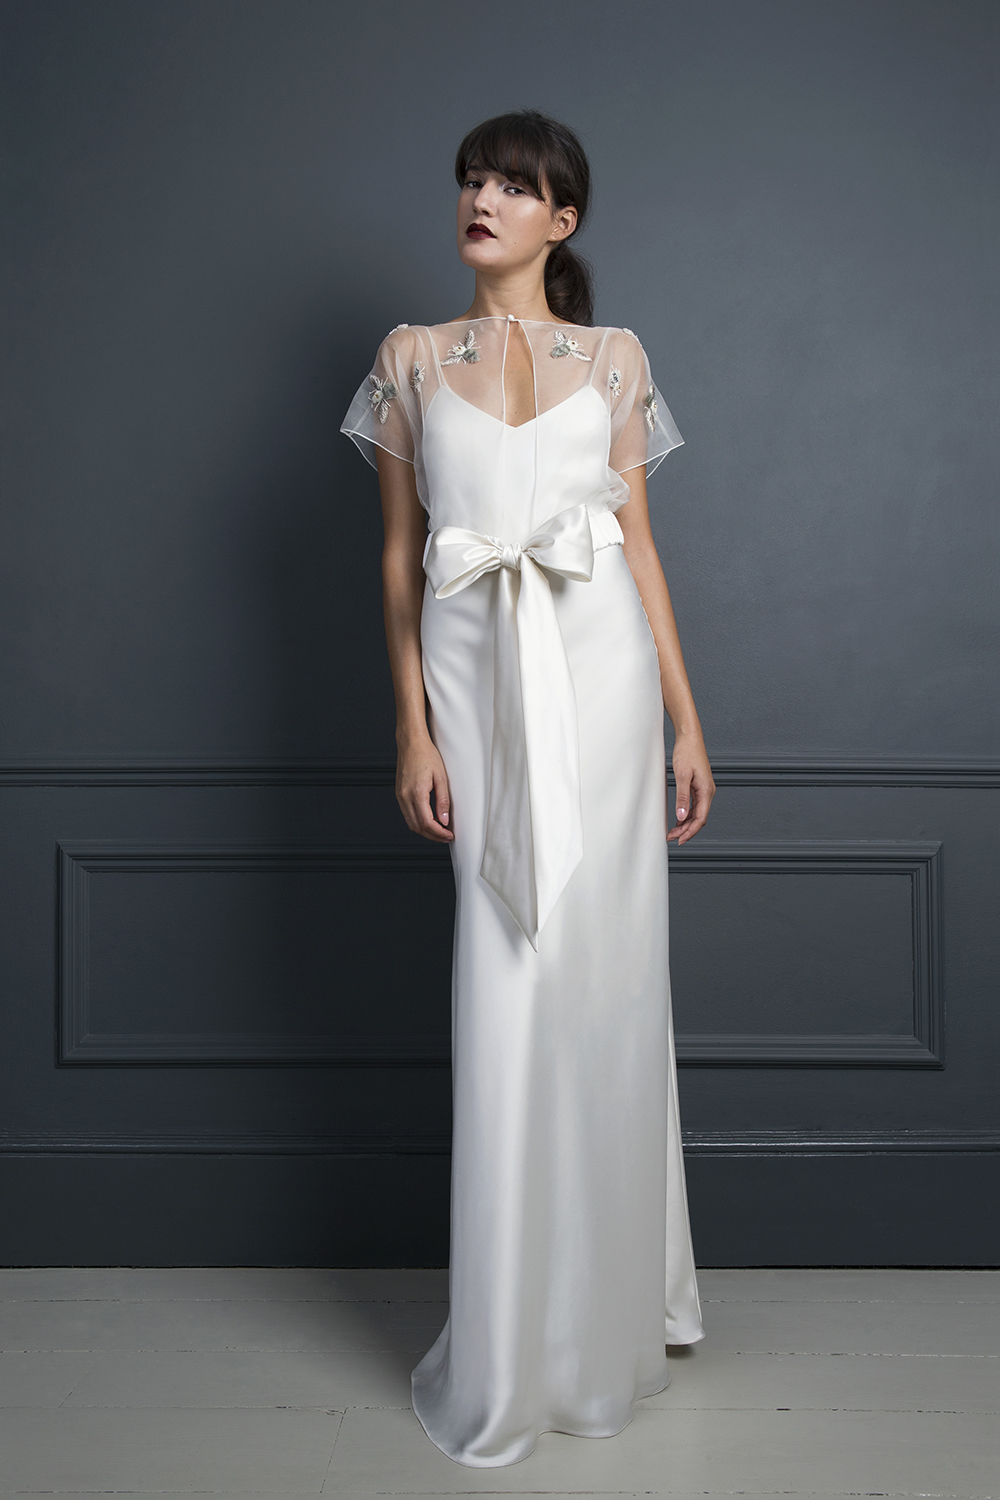 BUMBLE TOP & IRIS SLIP | WEDDING DRESS BY HALFPENNY LONDON